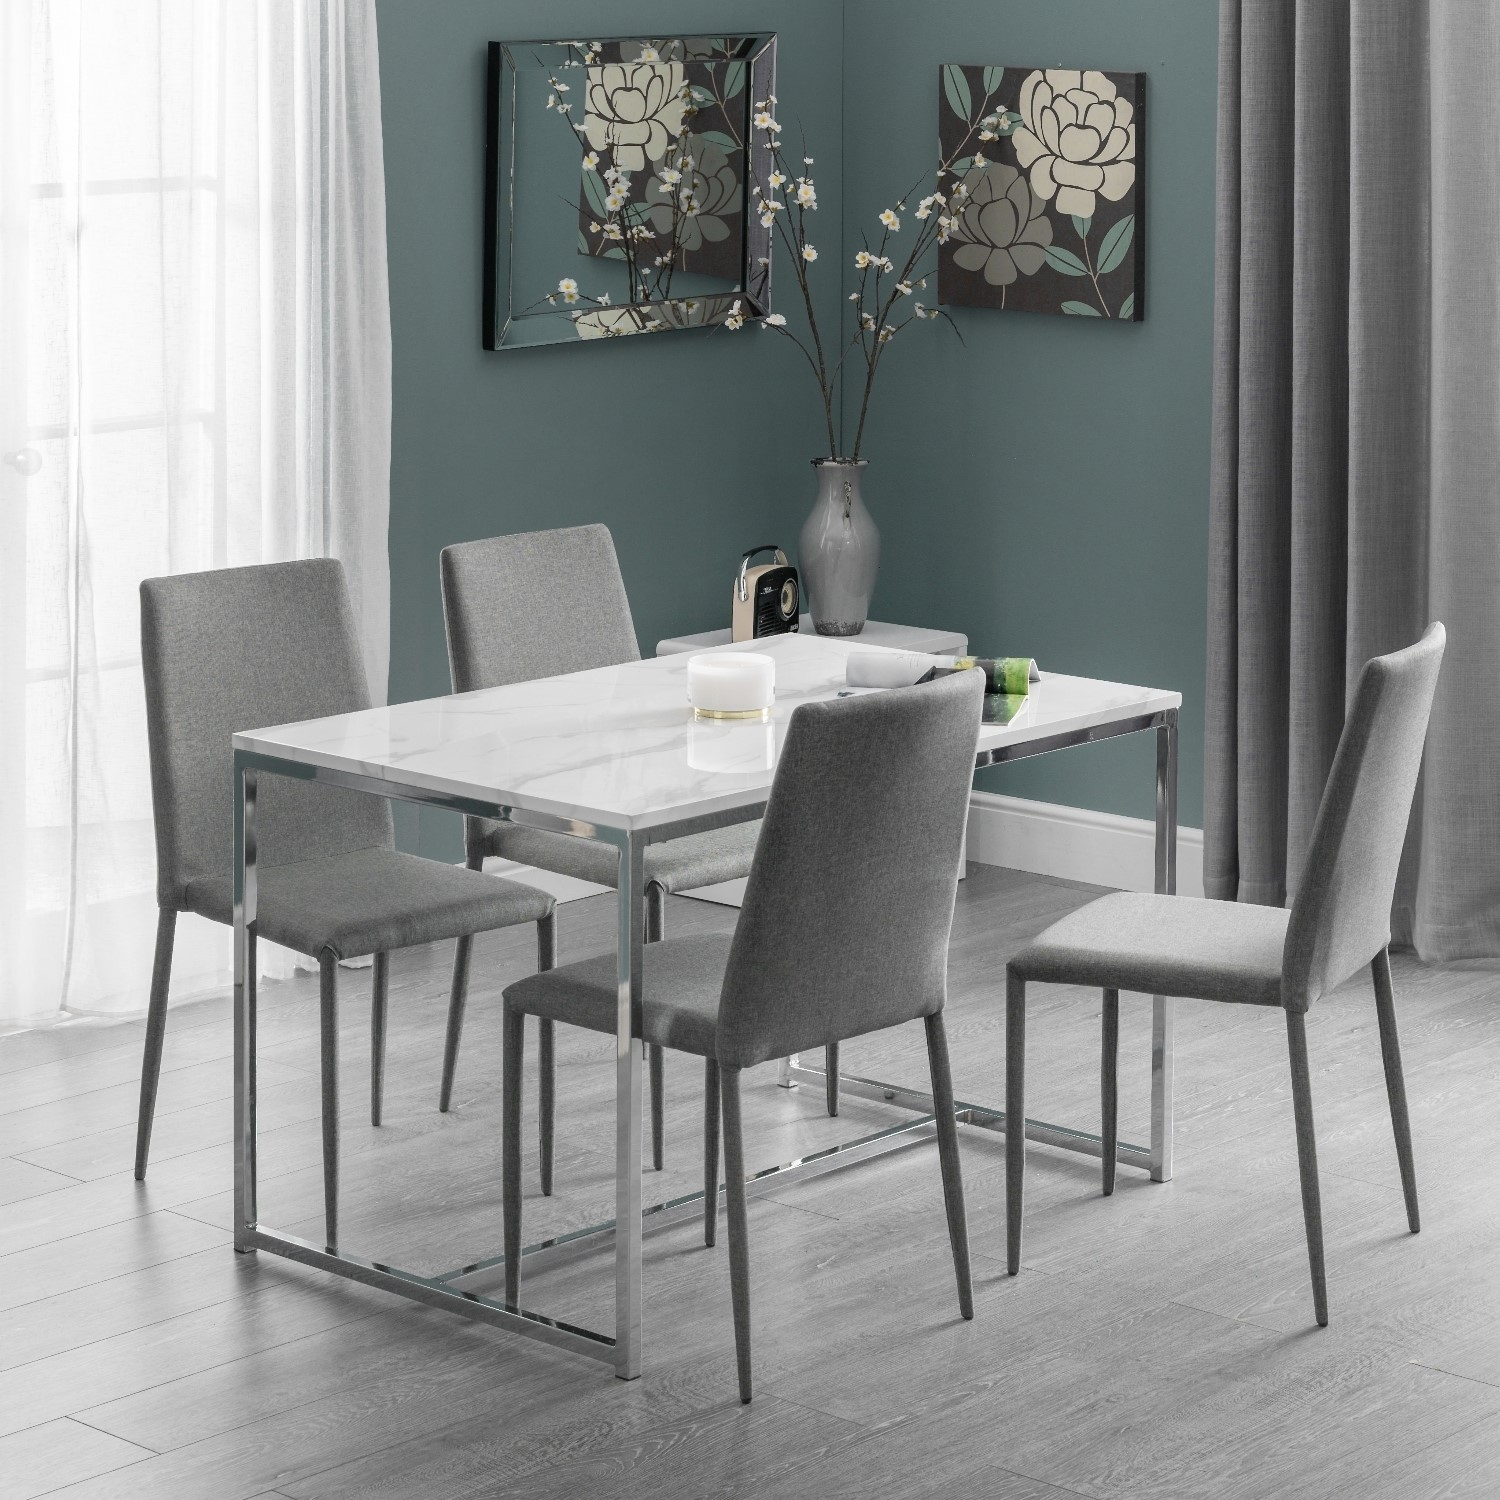 White Marble Dining Table With 4 Grey Dining Chairs Julian Bowen Scala Furniture123